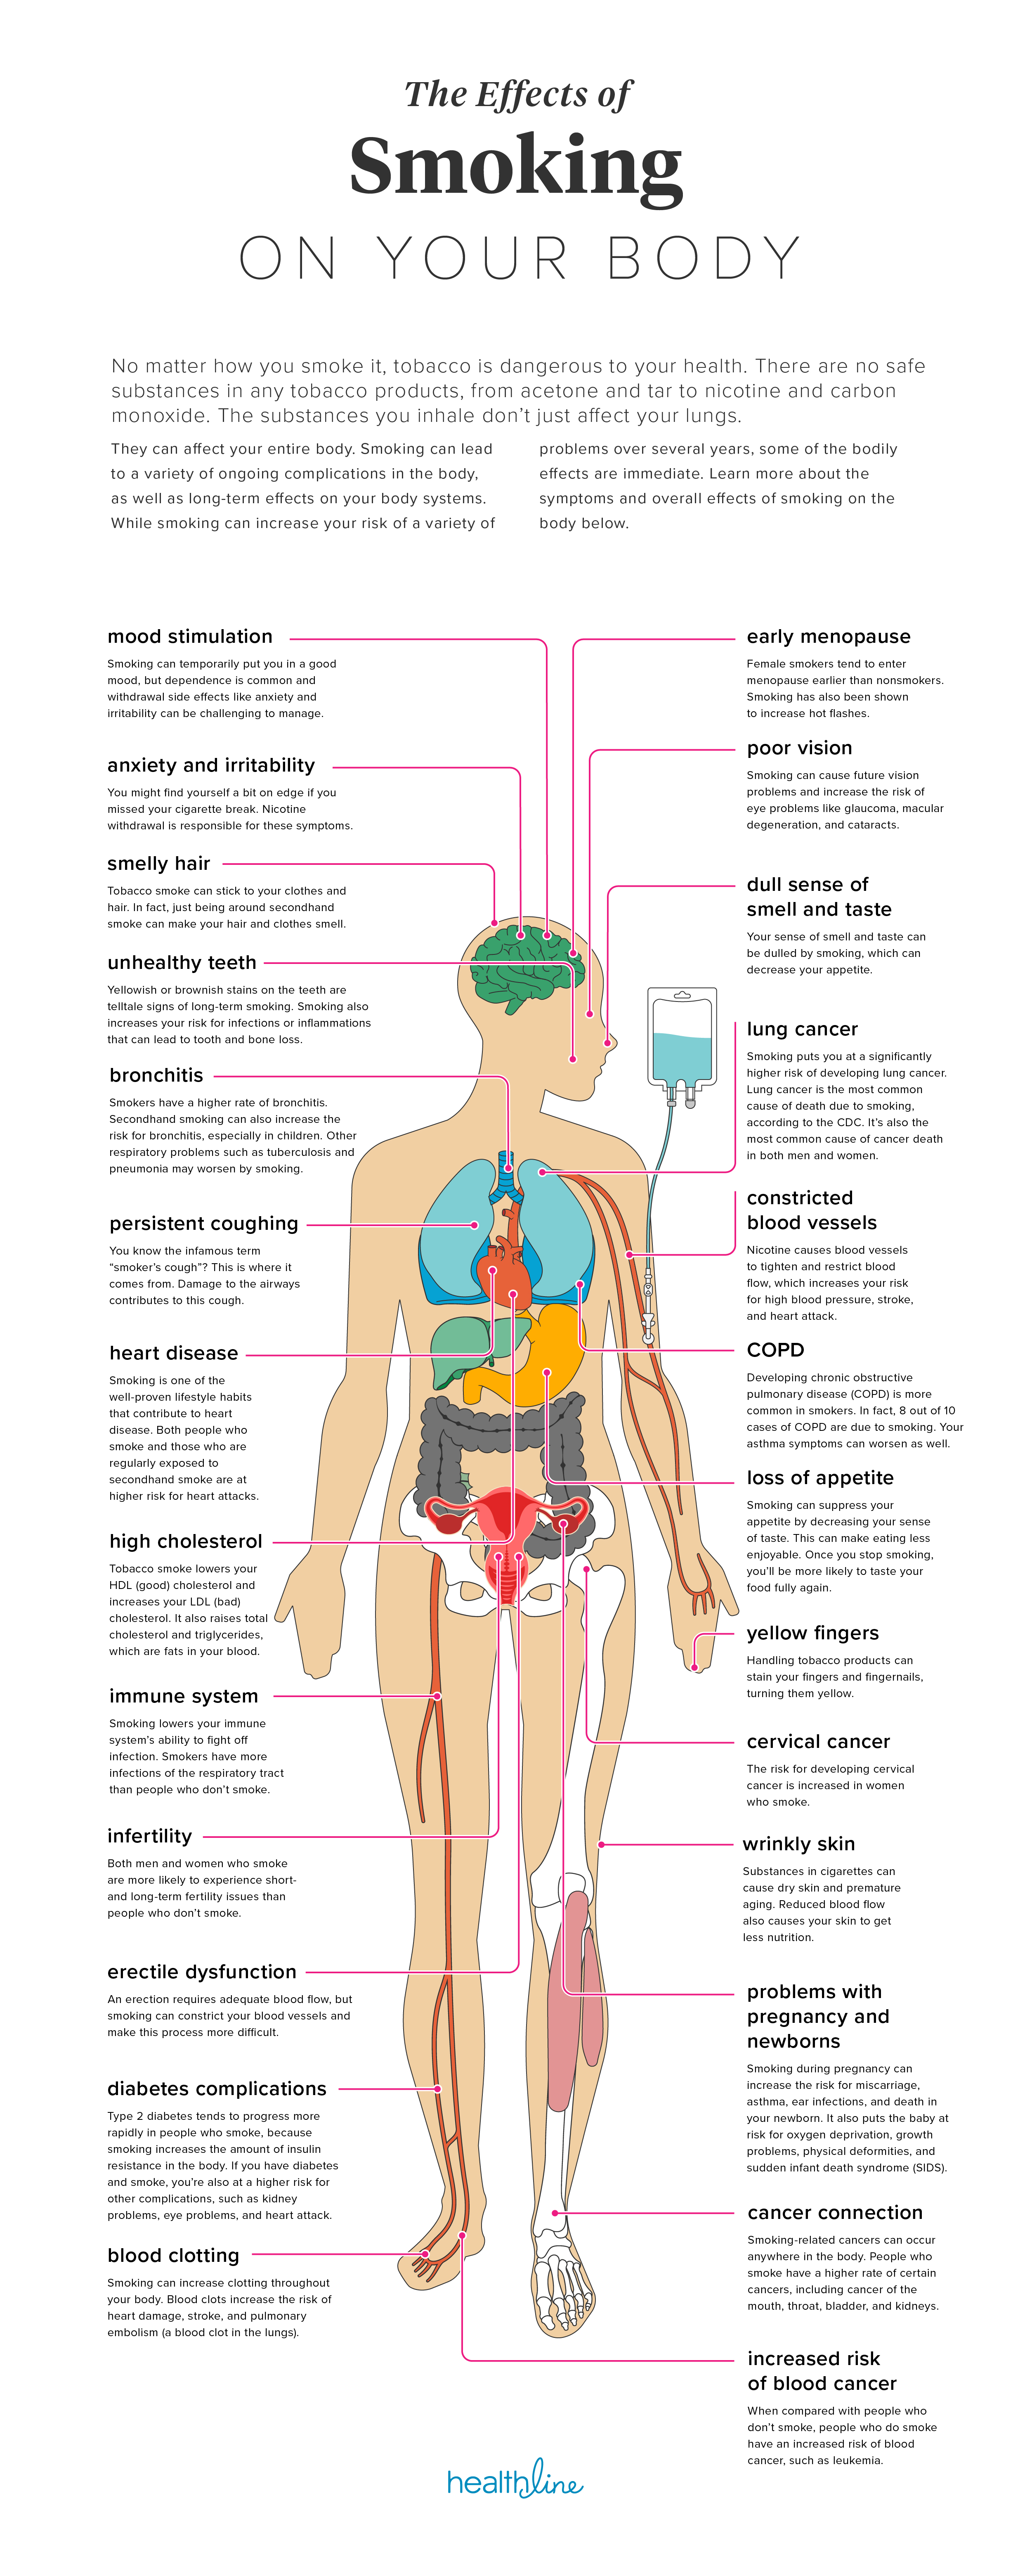 The Effects of Smoking On Your Body - Allergy and Asthma Network